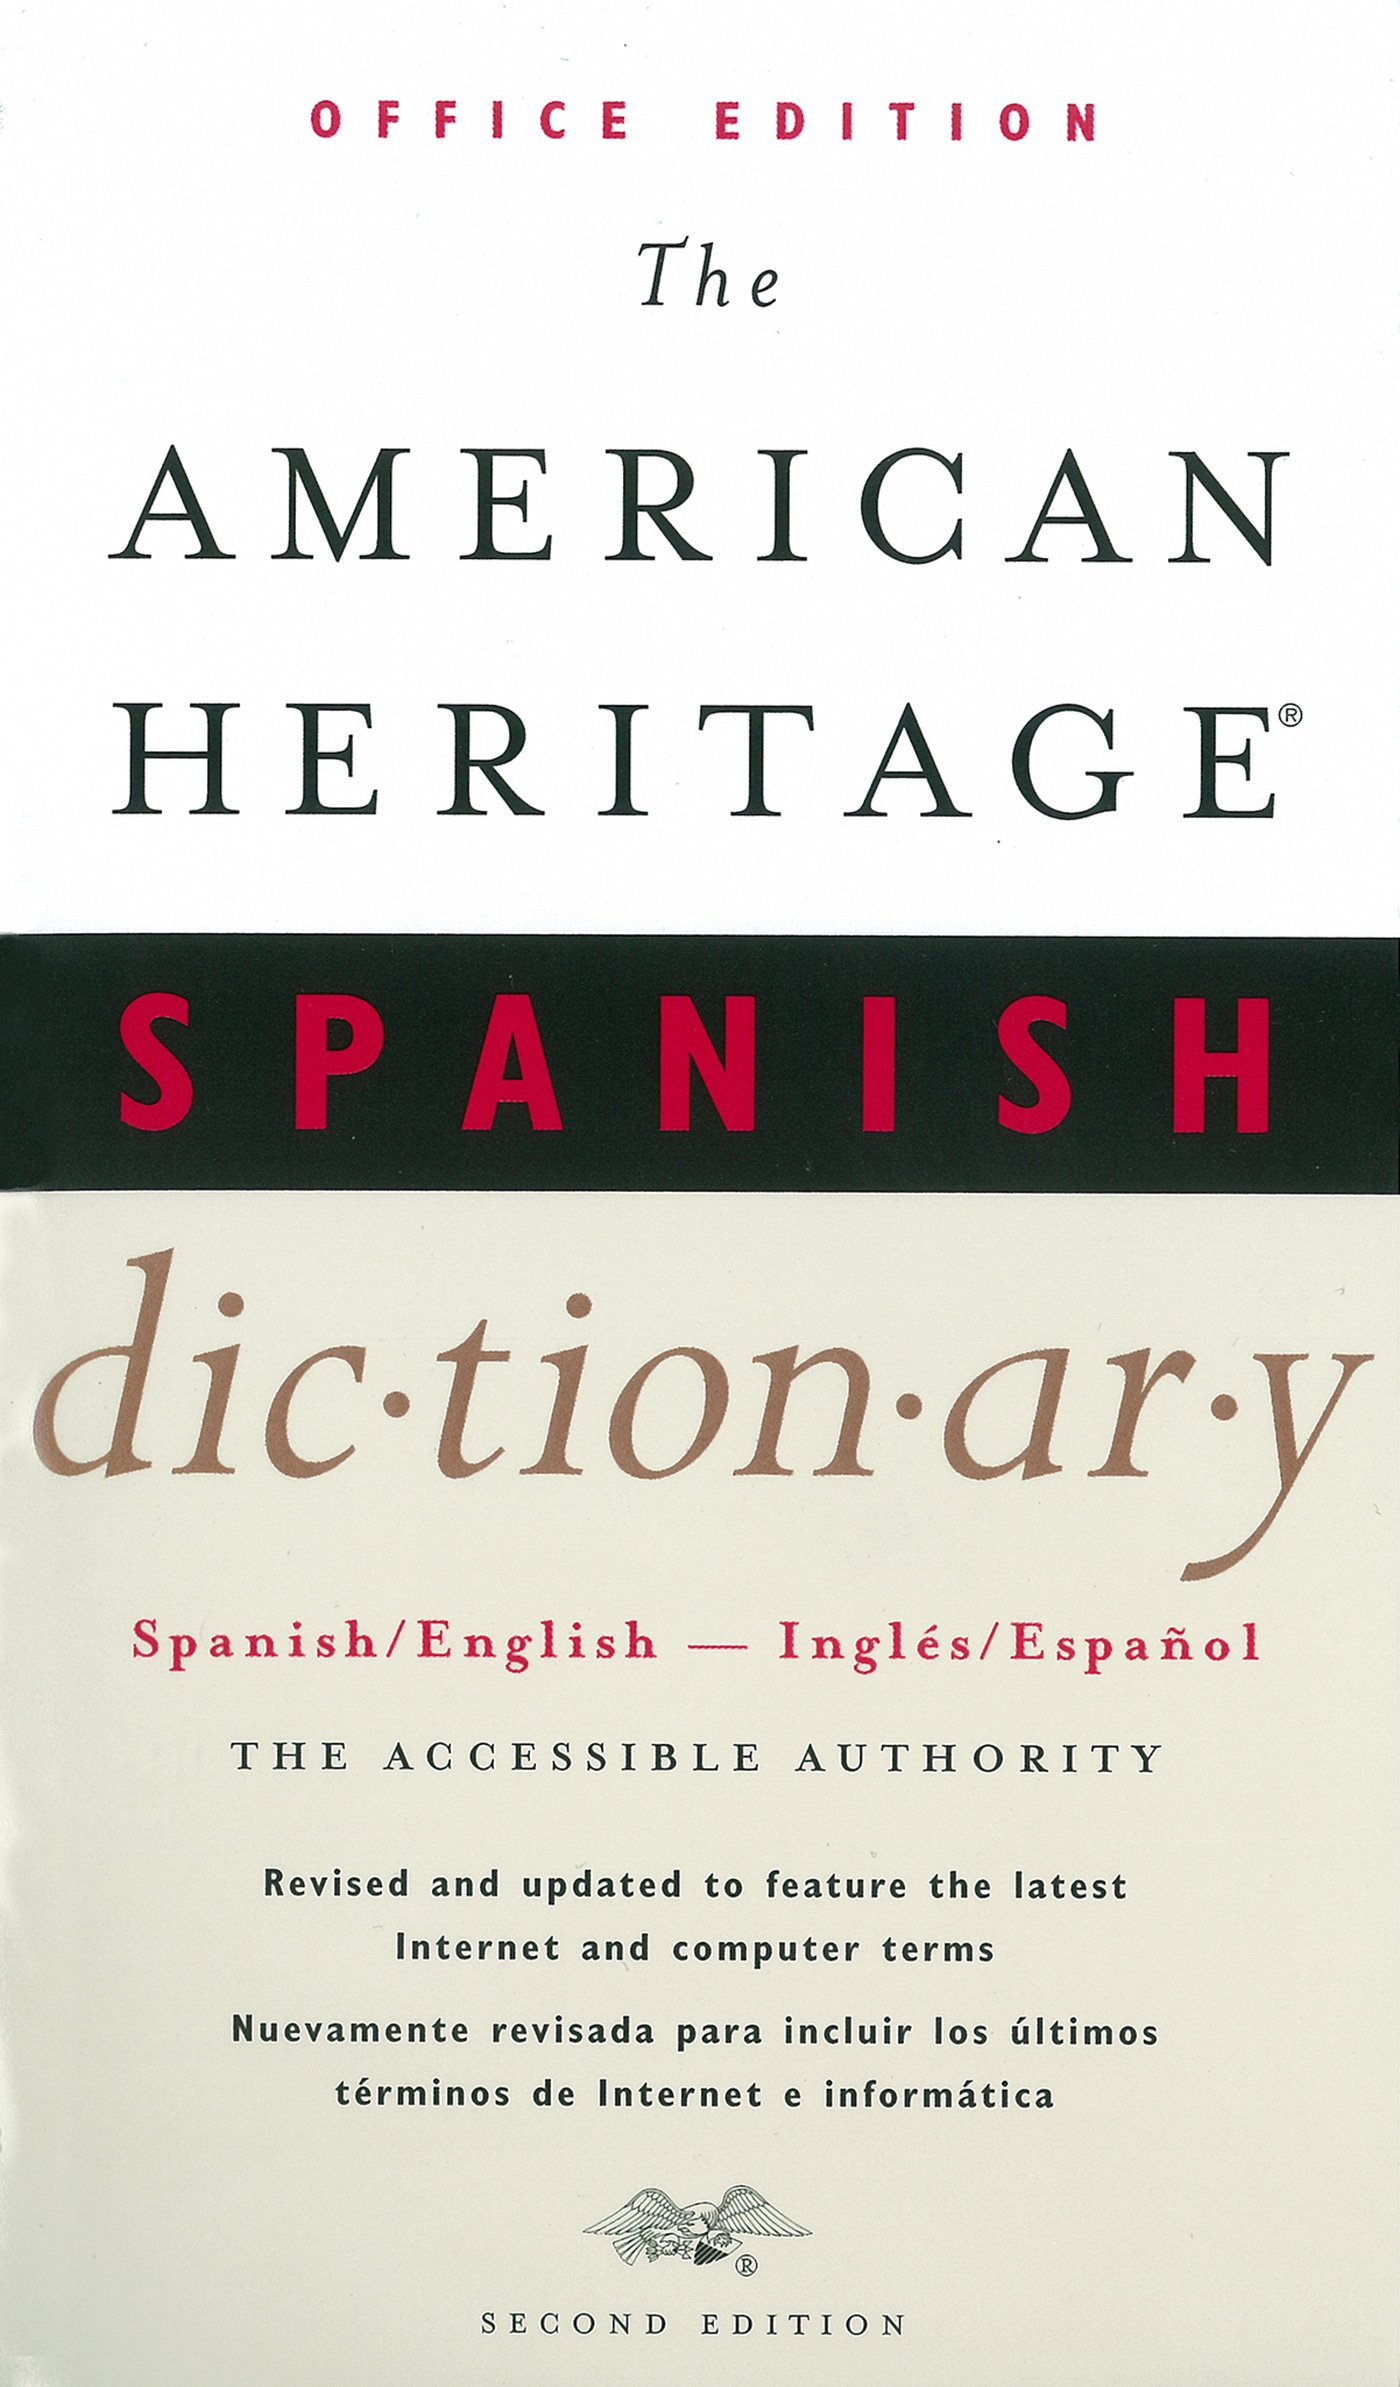 Download The American Heritage Spanish Dictionary, Second Edition: Office Edition PDF